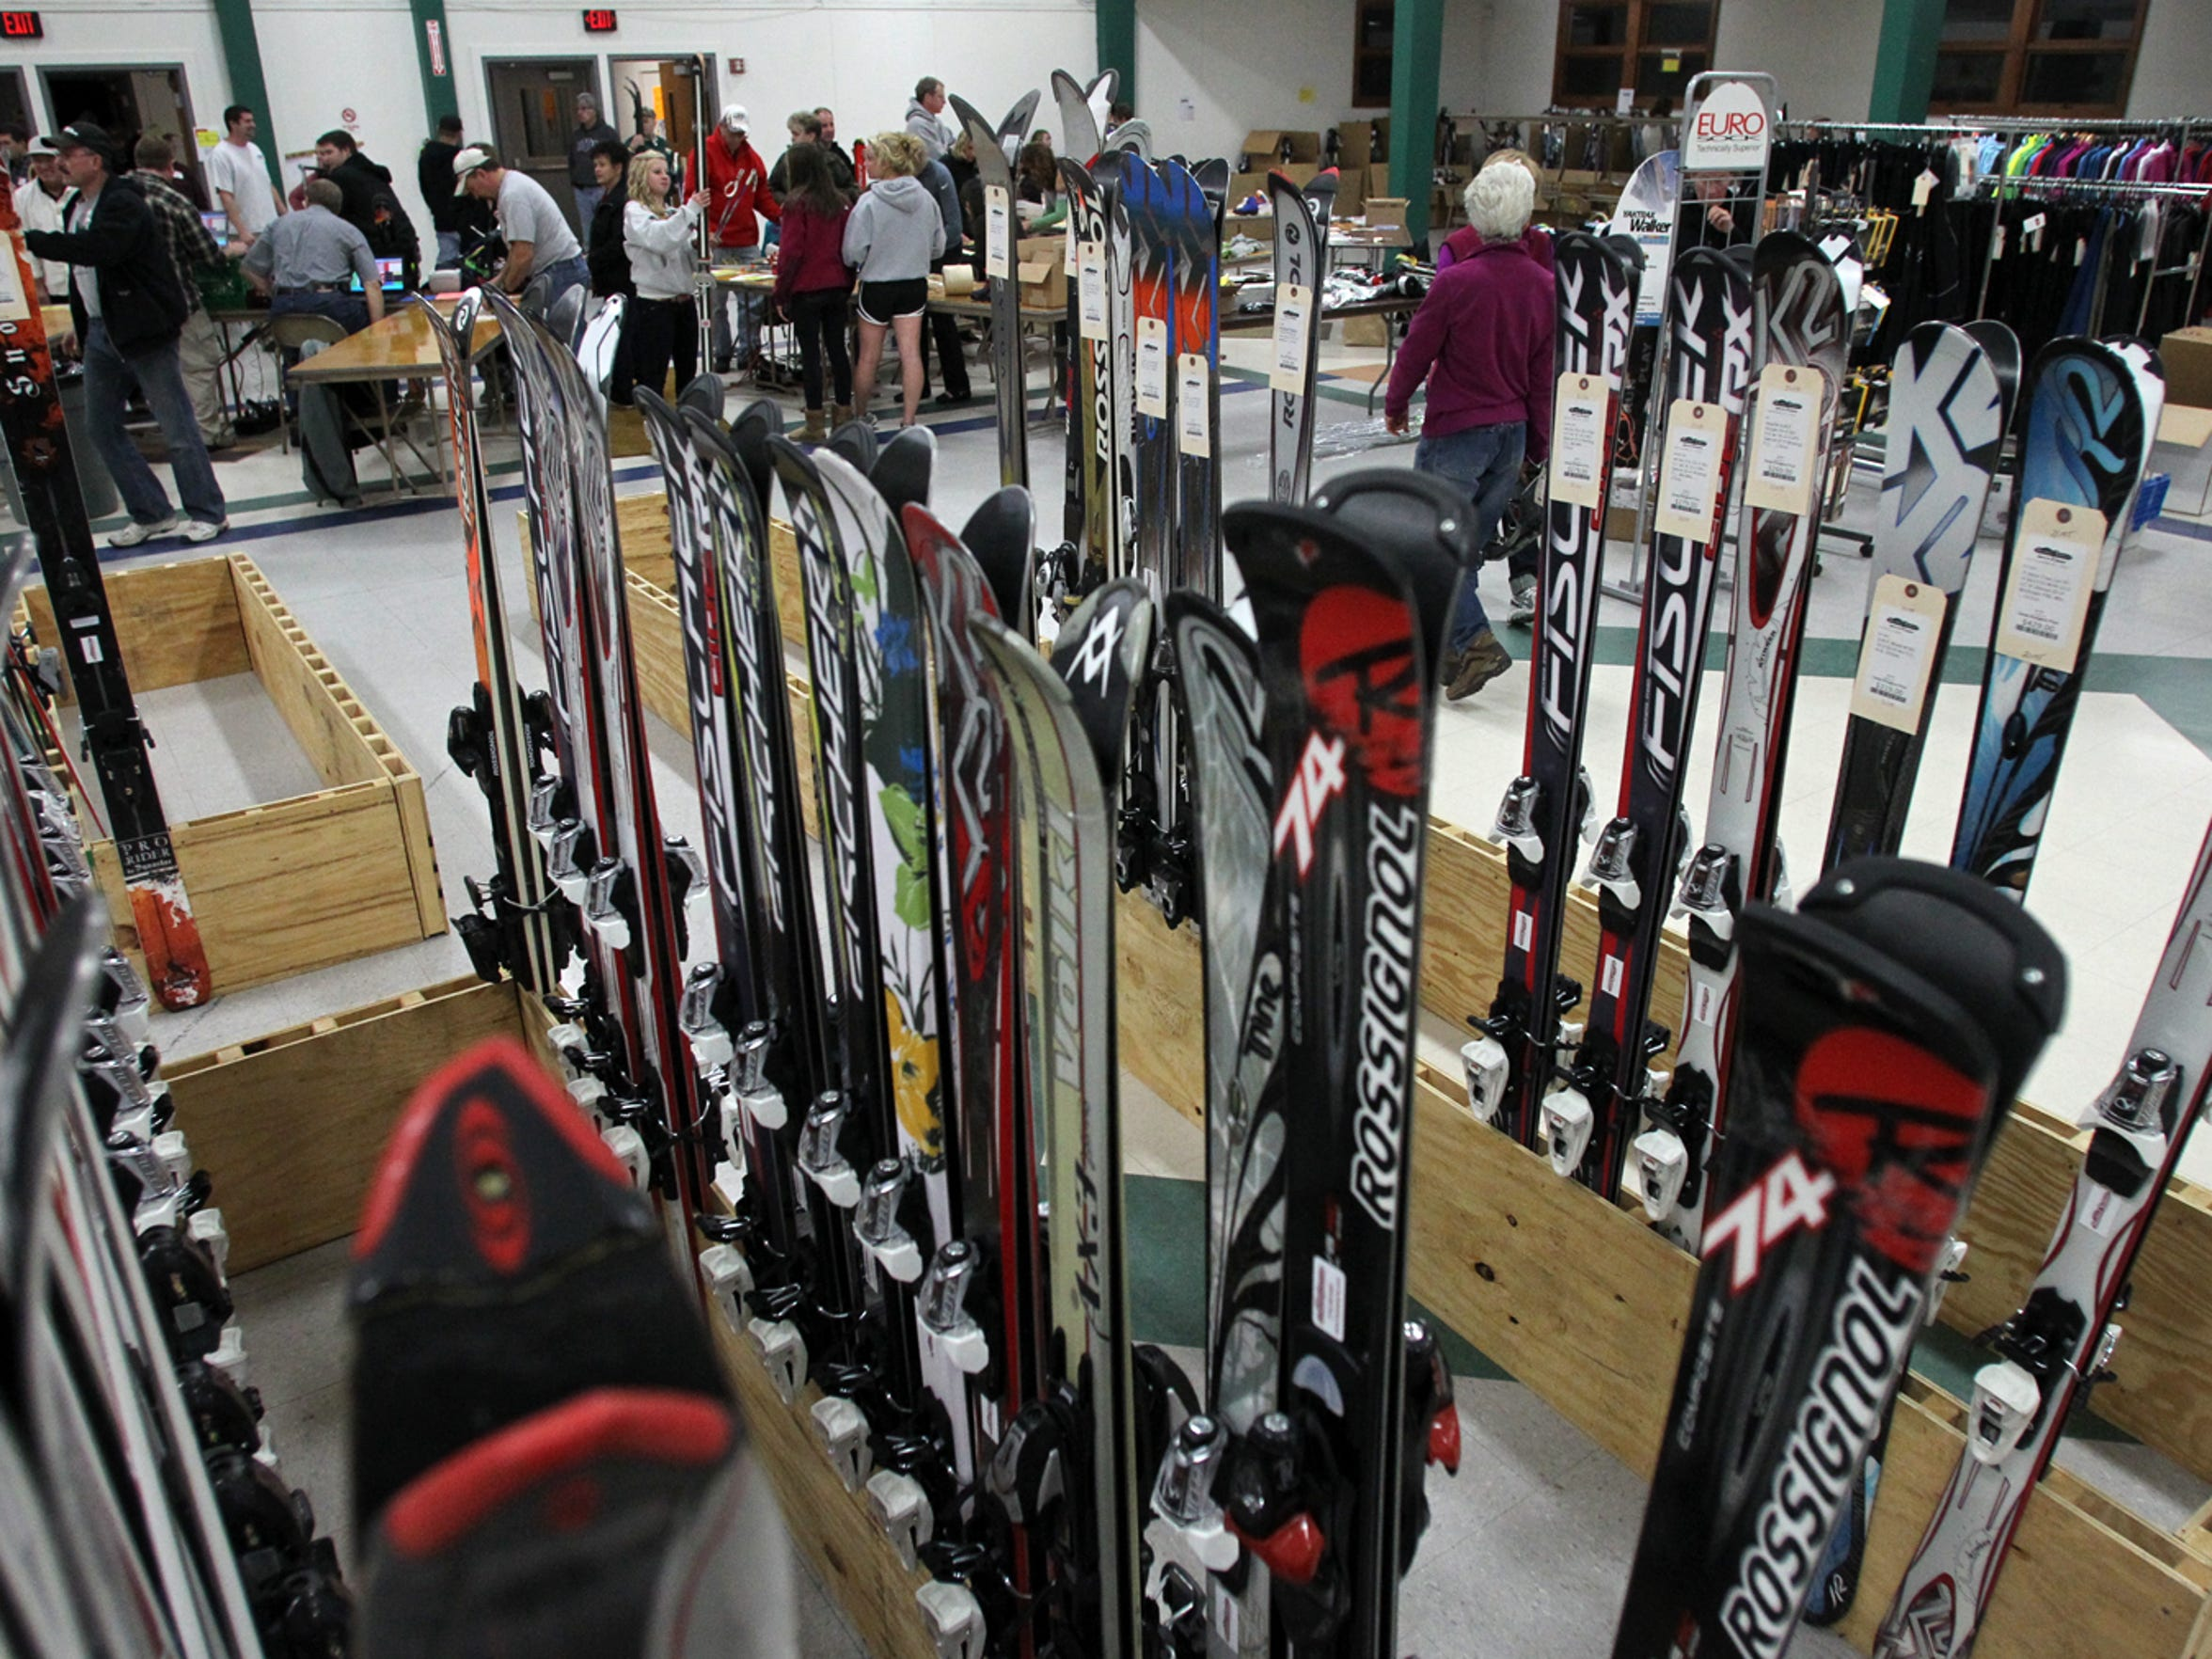 The Wausau Nordic ski sale will offer up used skis